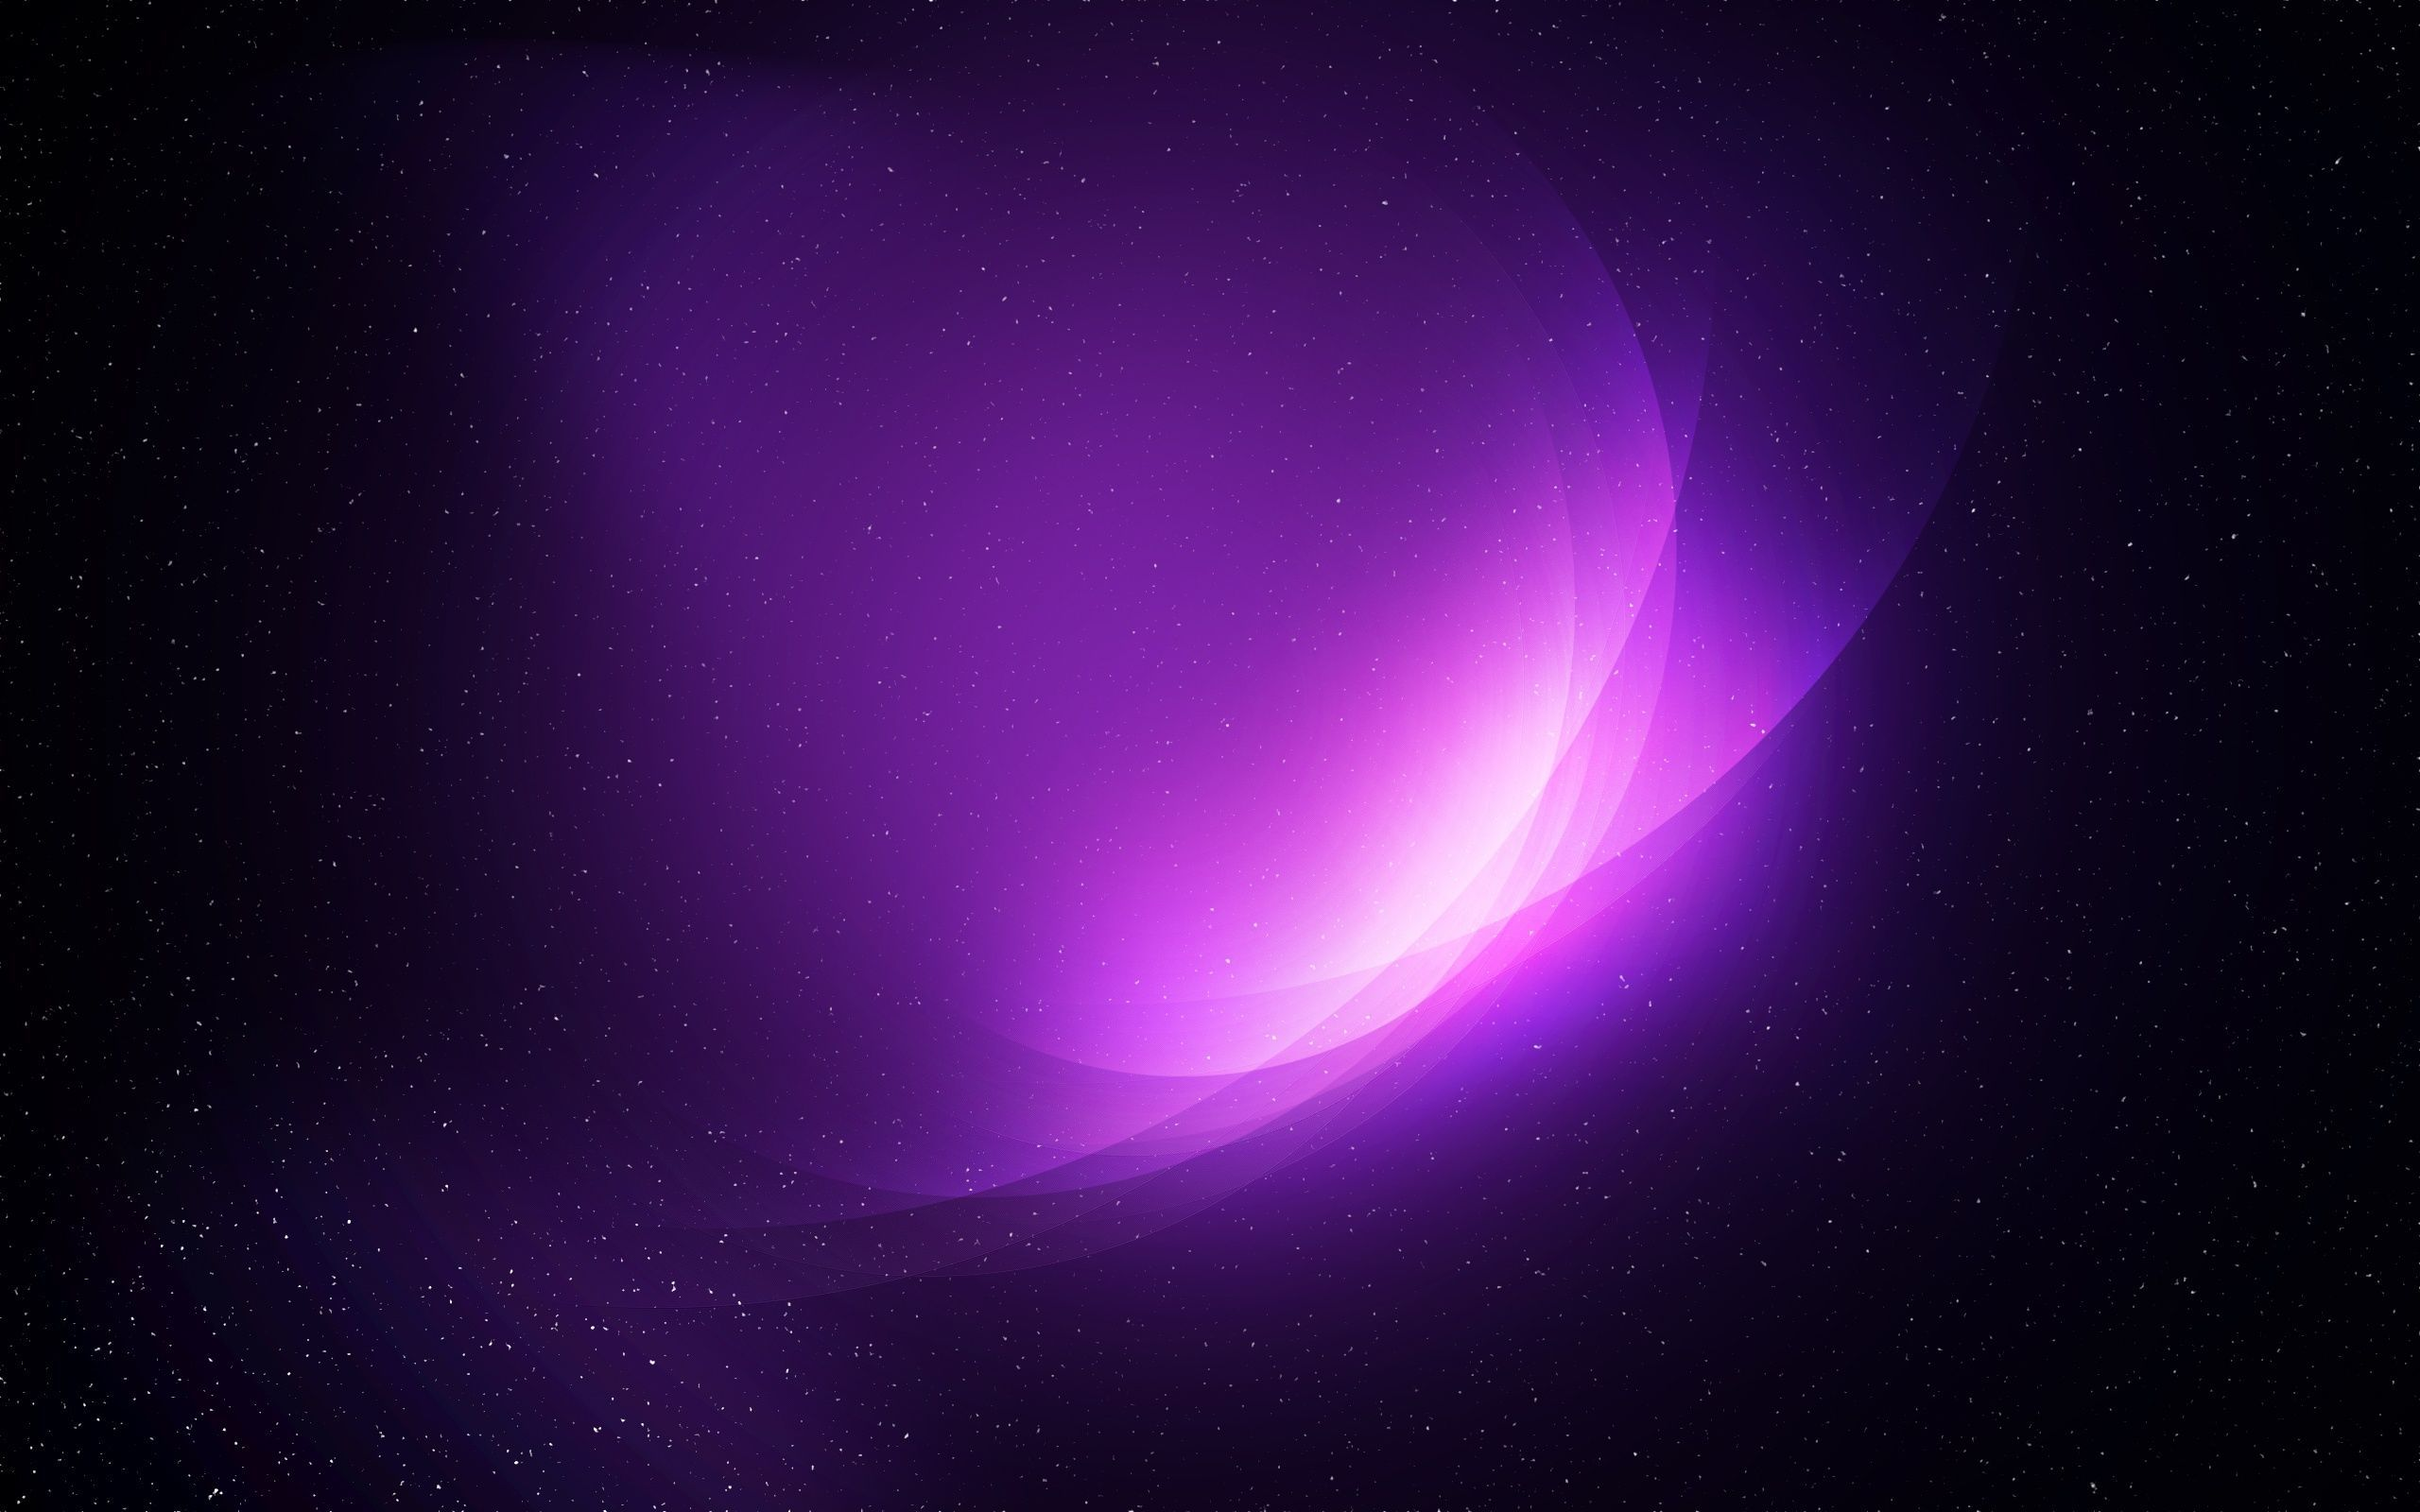 Purple Abstract Wide Light Backgrounds Wallpaper Hot Hd Wallpapers Abstract Art Wallpaper Black And Purple Wallpaper Black And Purple Background